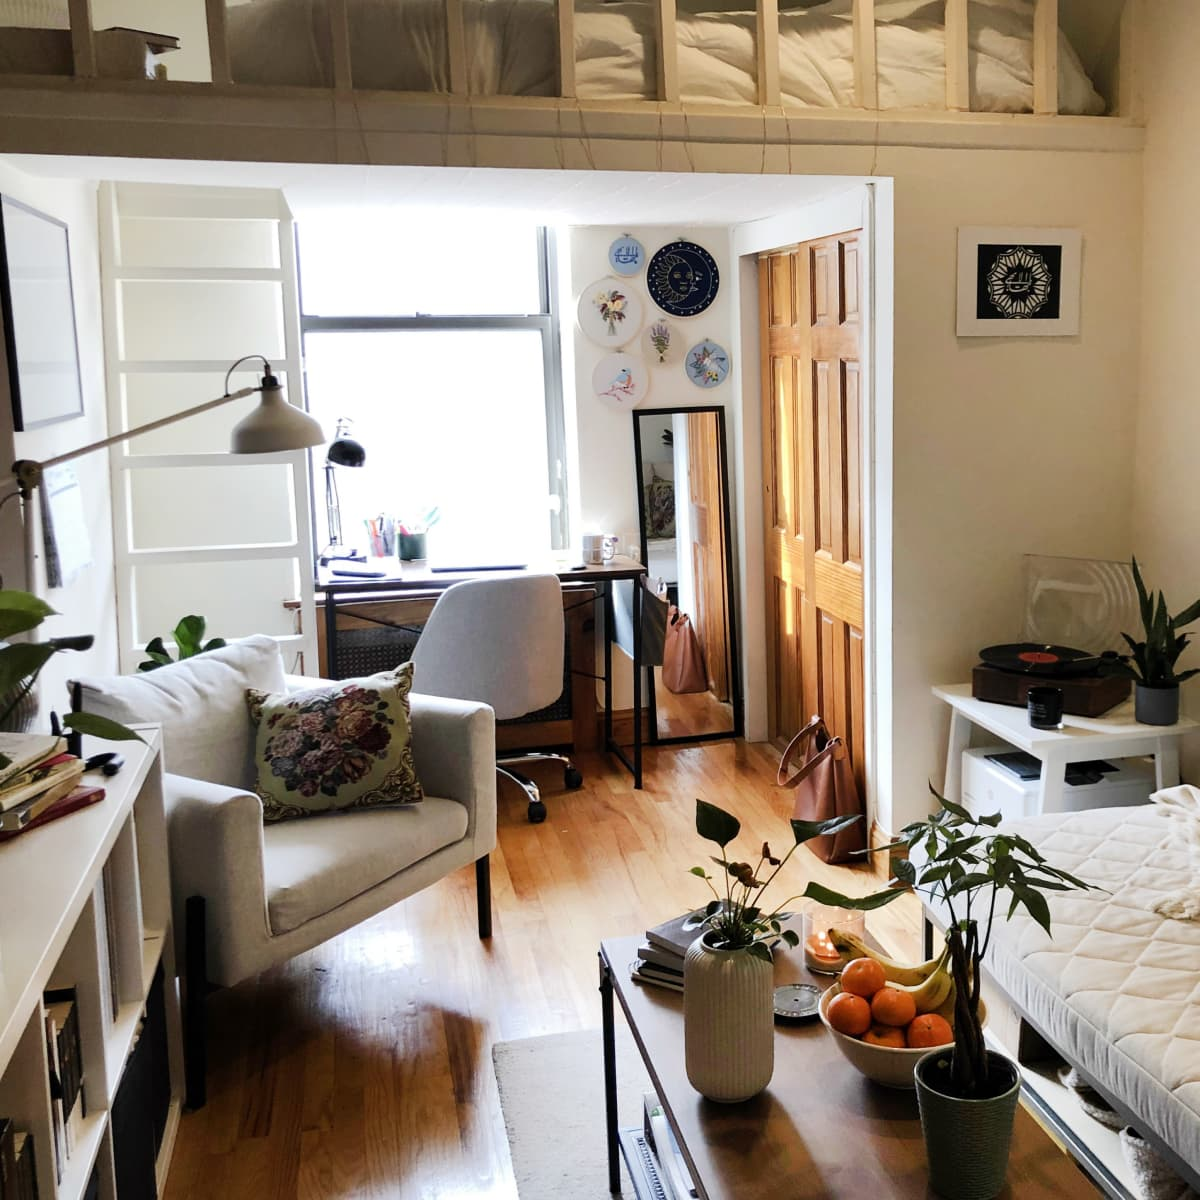 A 350-Square-Foot NYC Studio Apartment Feels Larger Thanks to a Good Layout